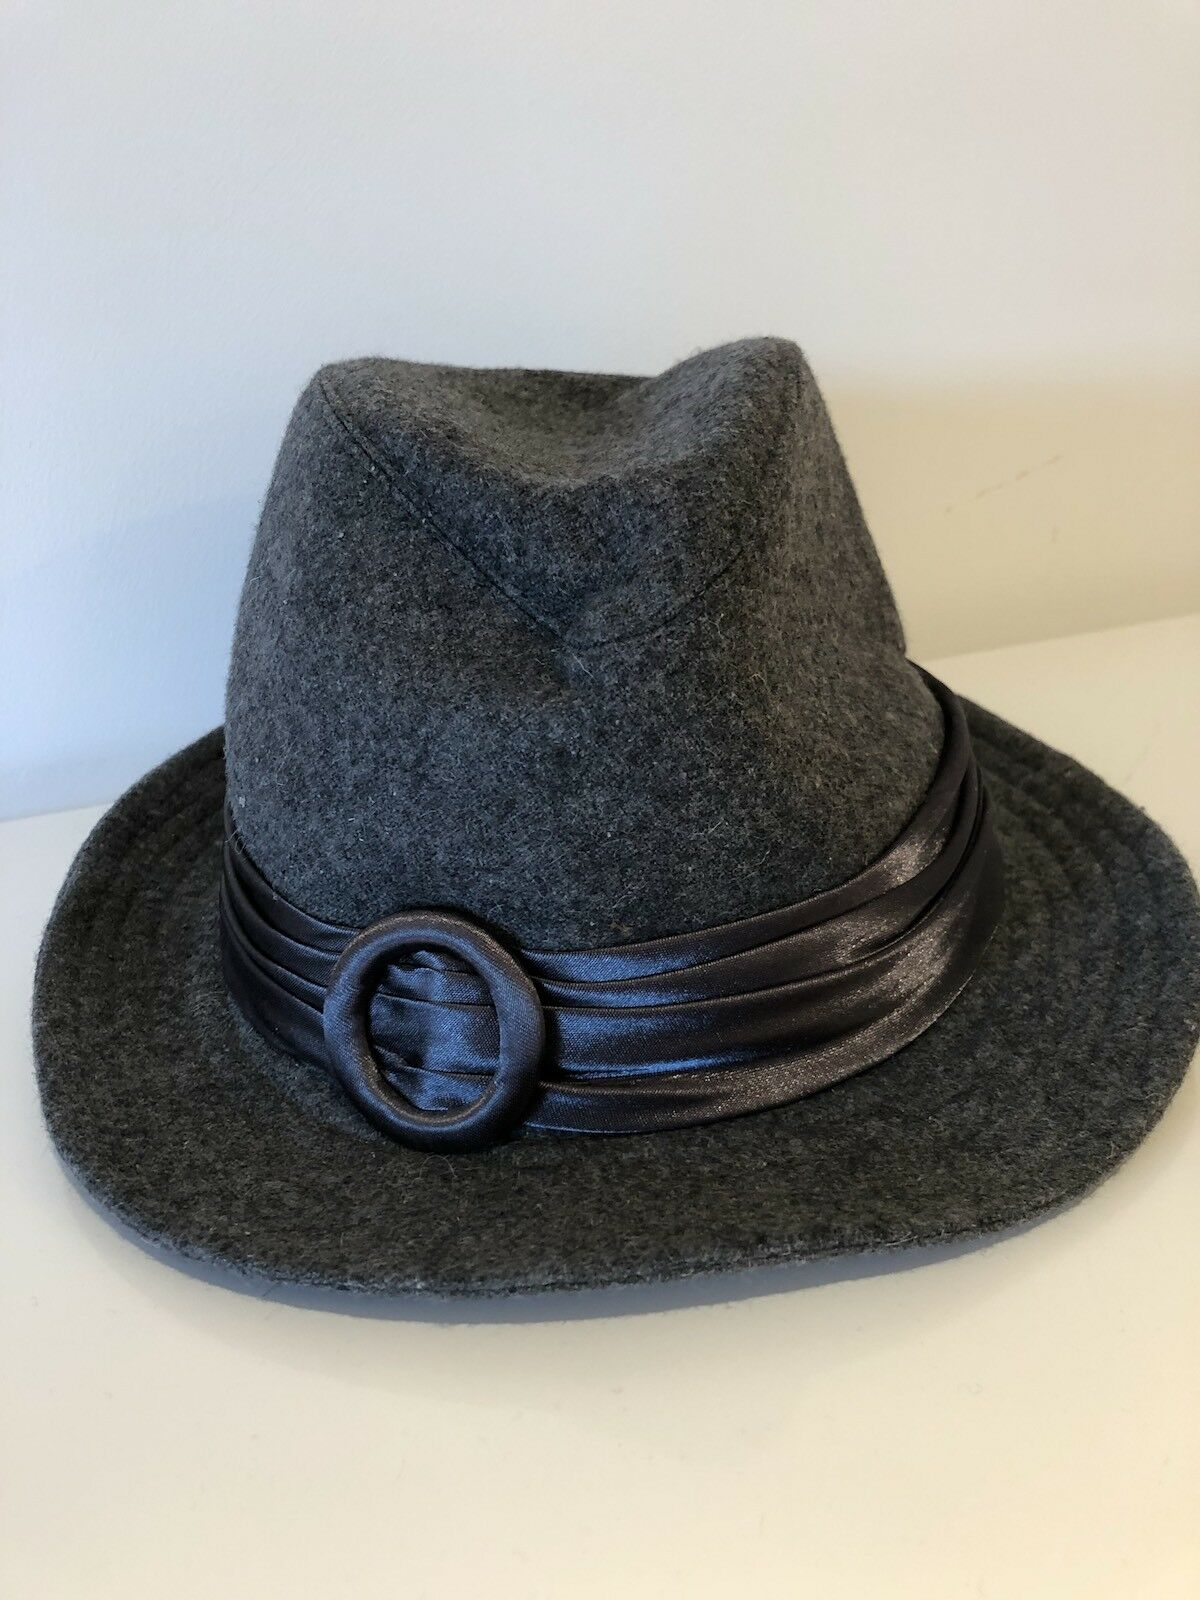 New With Tags assessorize Hat